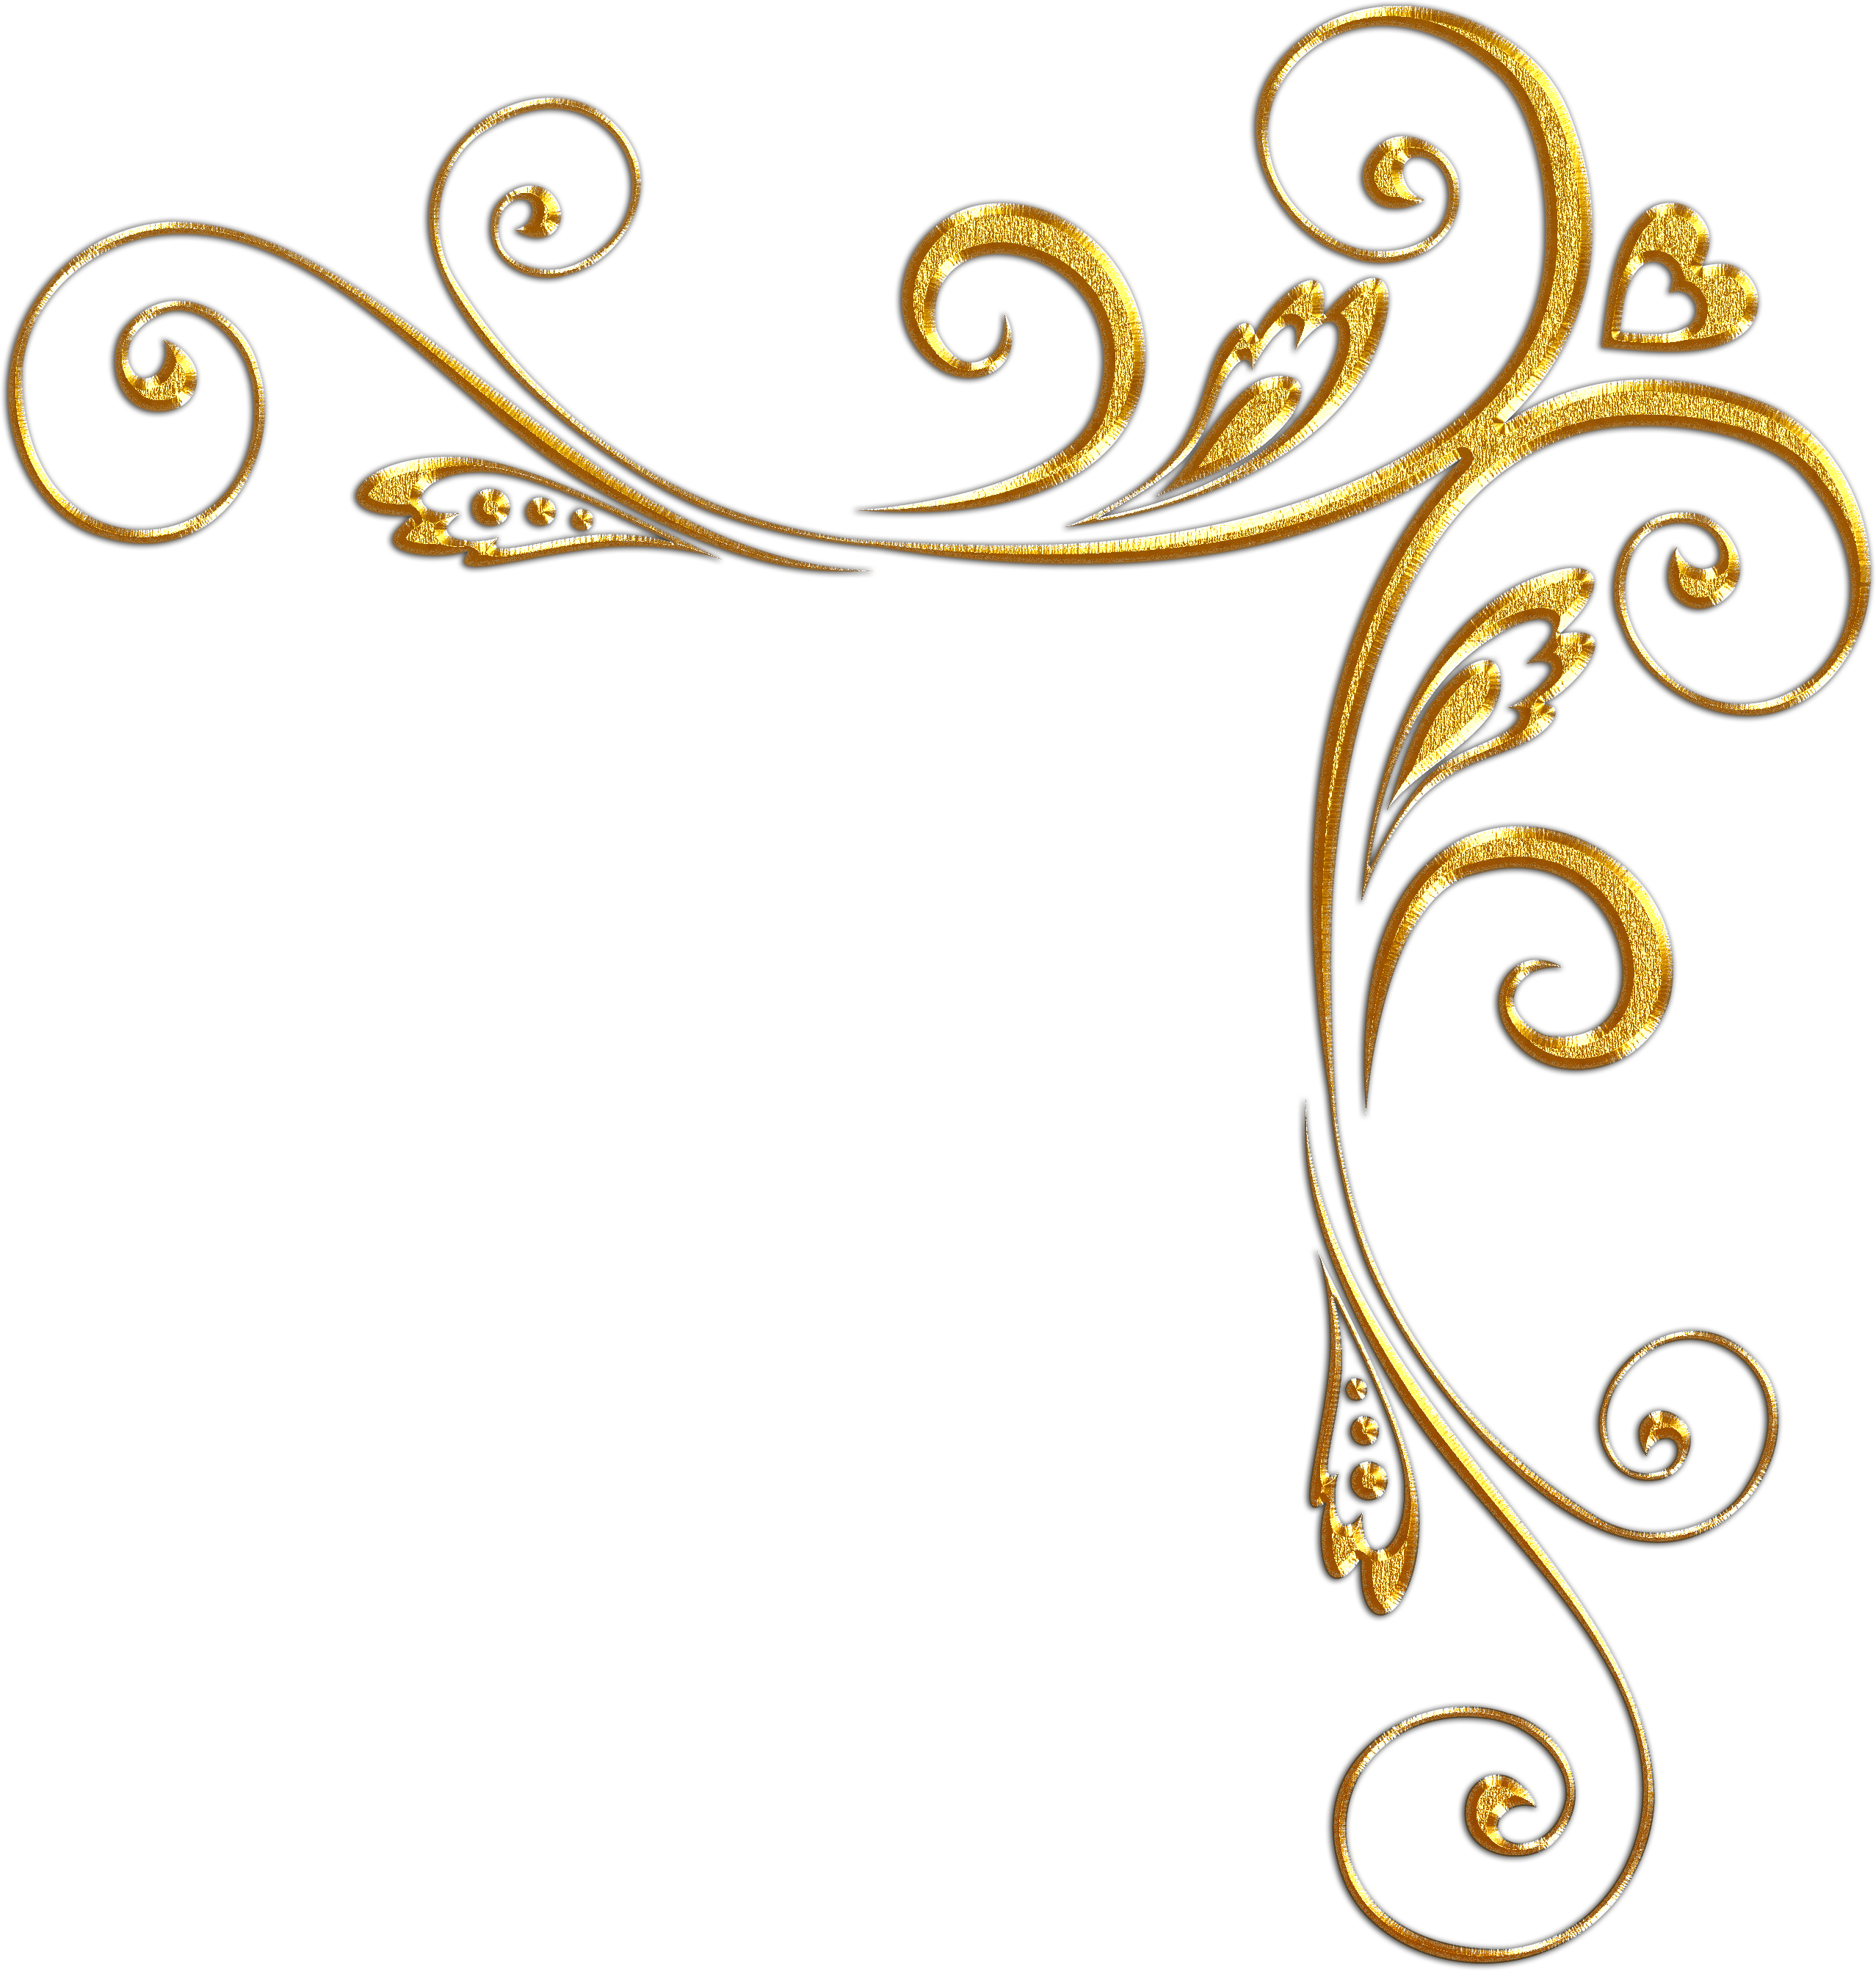 Gold swirl border design png. Images of background spacehero